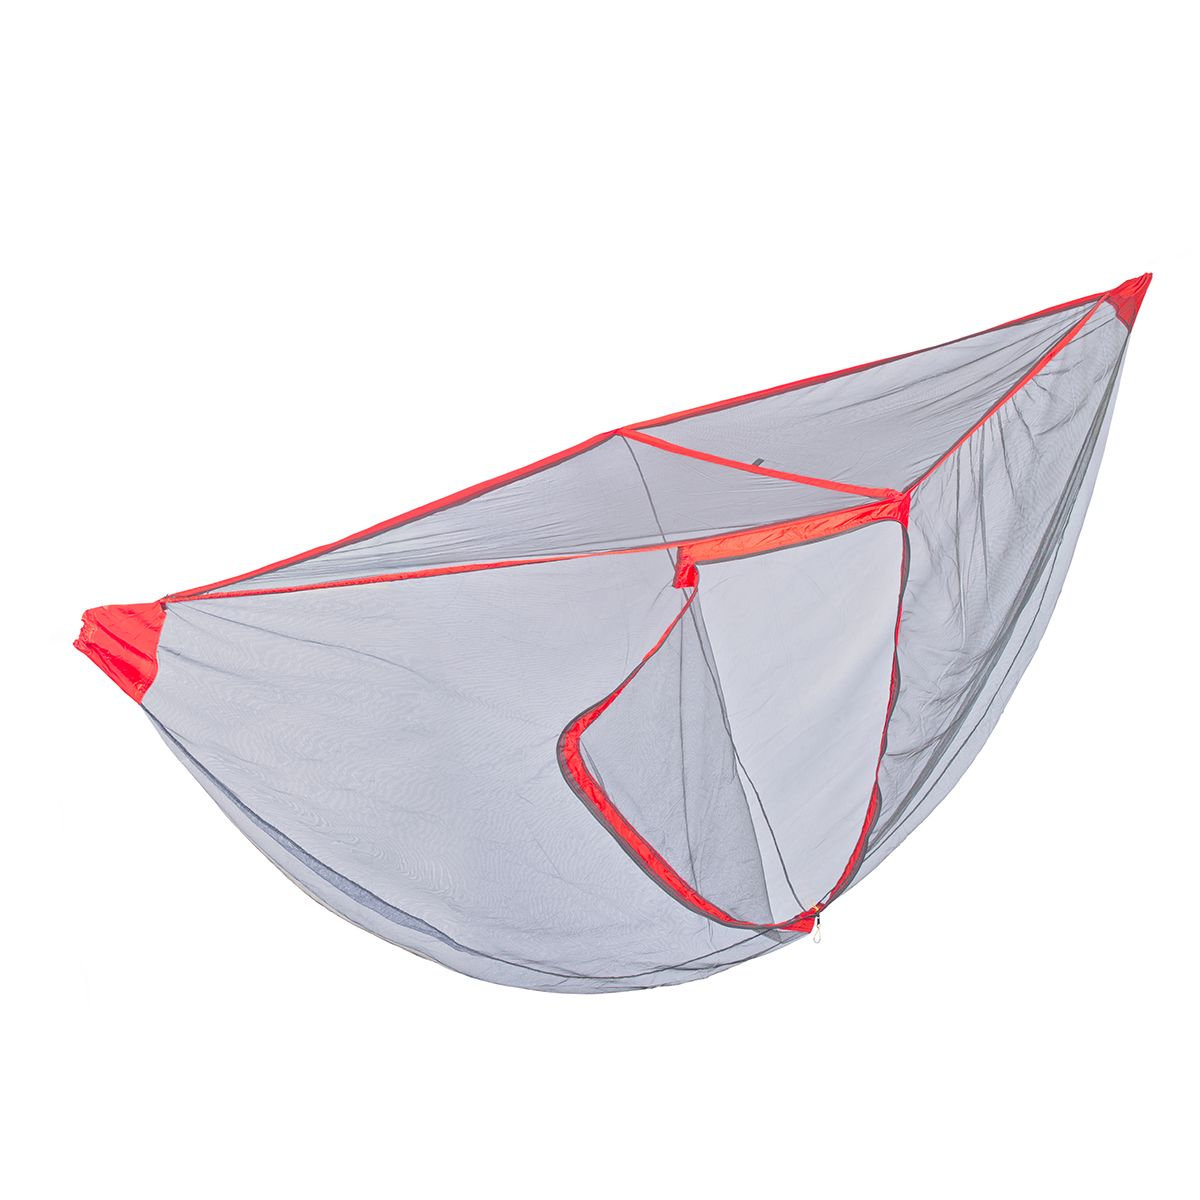 Sea to Summit Hammock Bug Net (Schwarz) | Hängematten >